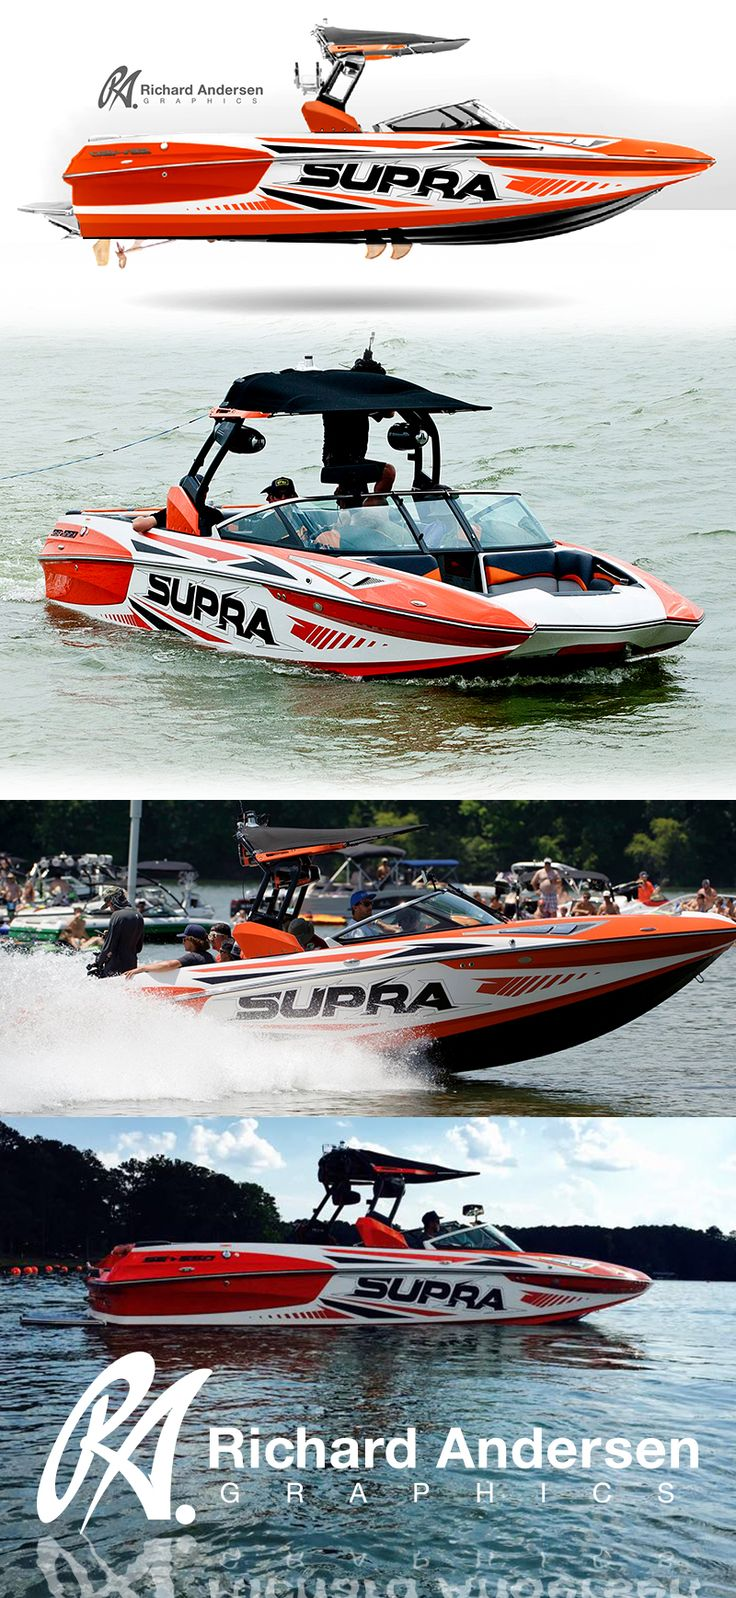 ra wrap design - Boat Graphics Designs Ideas